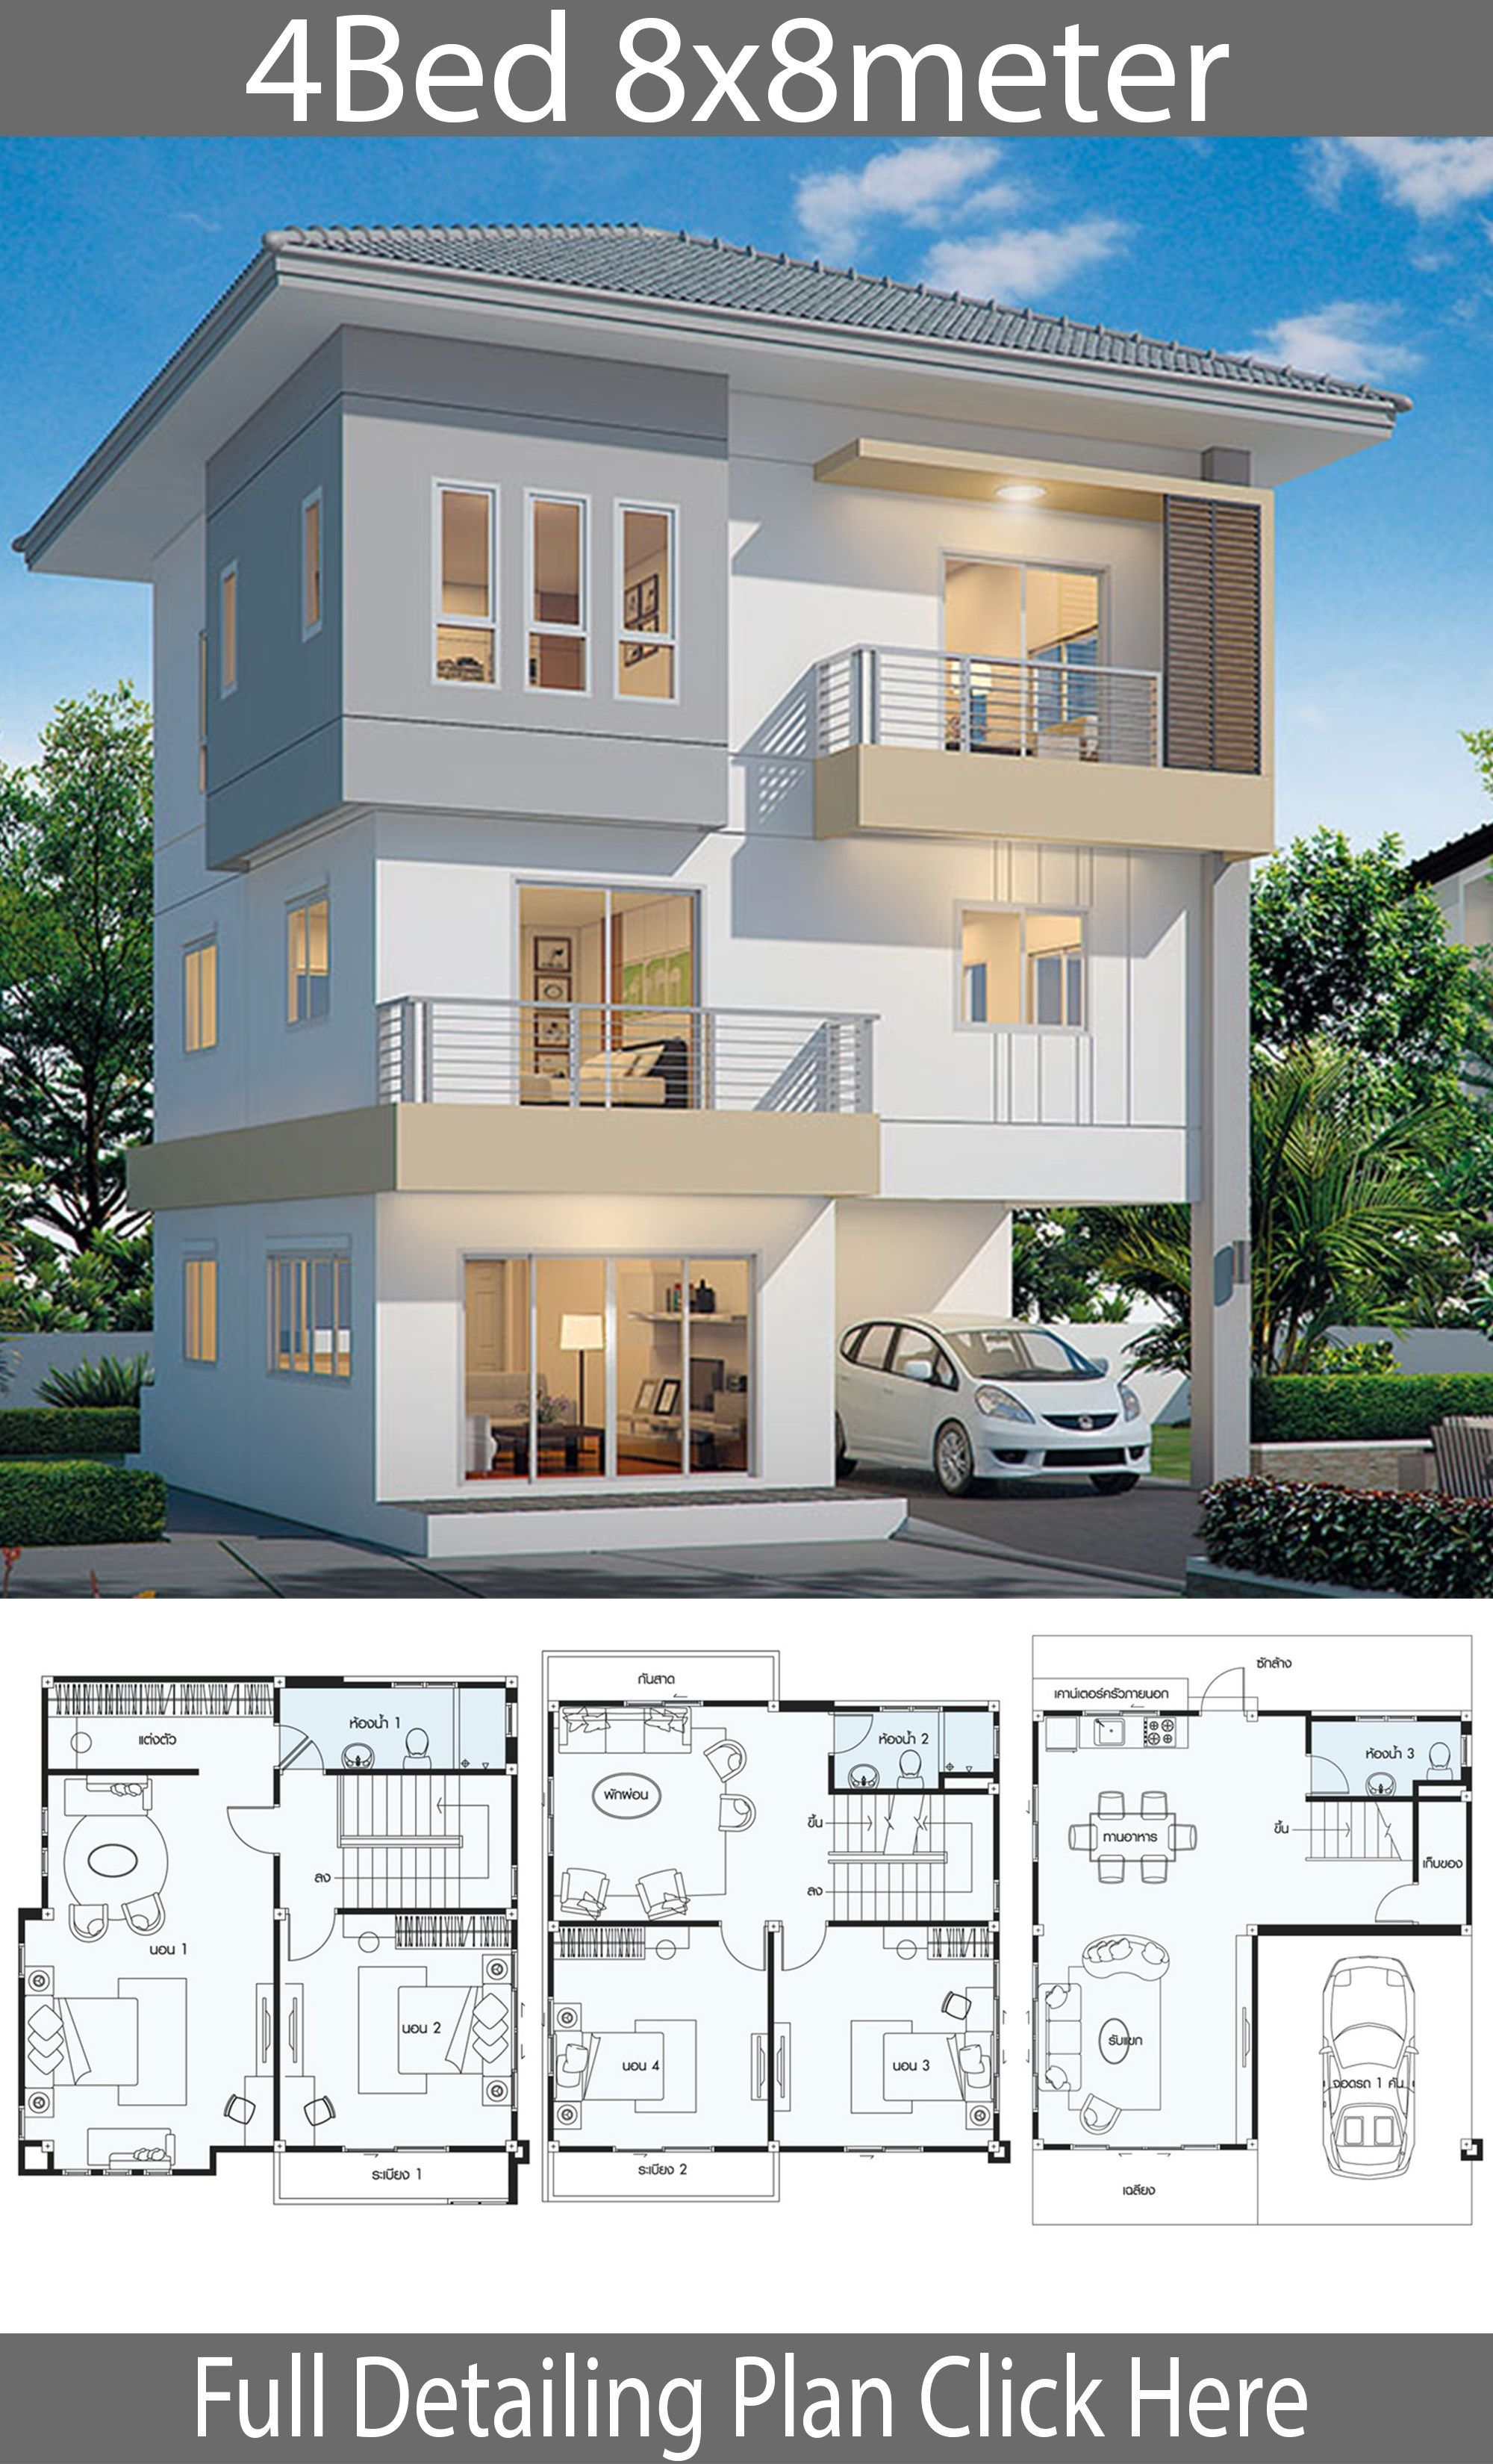 House Design Plan 8x8m With 4 Bedrooms With Images Home Building Design Duplex House Design House Layout Plans